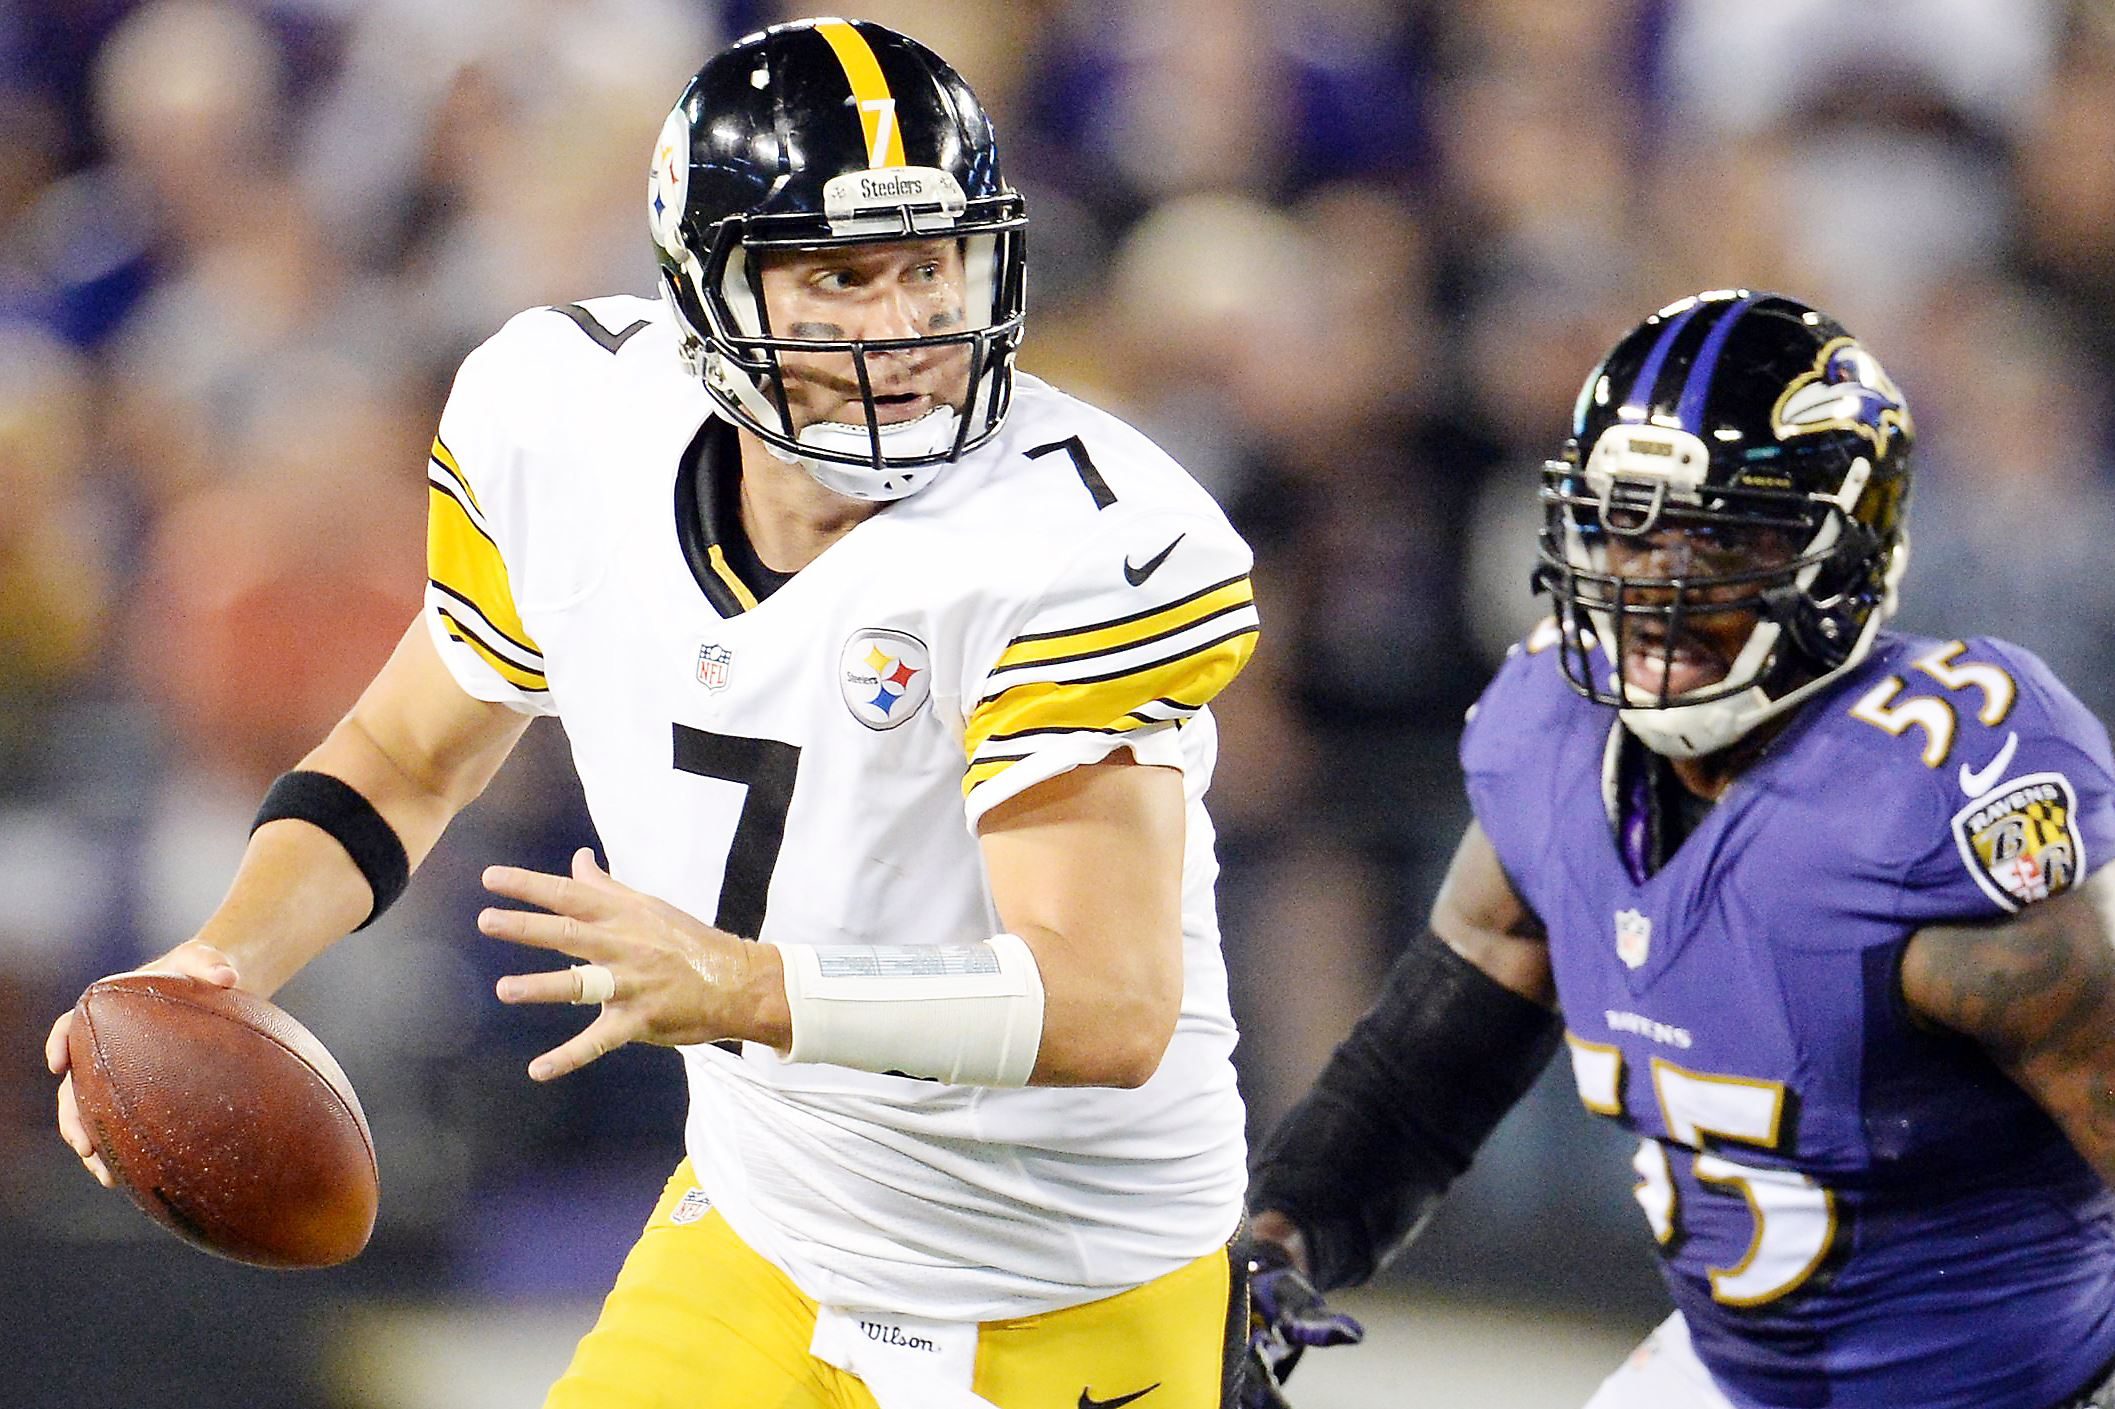 Ben Roethlisberger, Steelers vs. Ravens, Steelers at M&T Bank Stadium, Ben Roethlisberger's M&T Bank Stadium losing streak